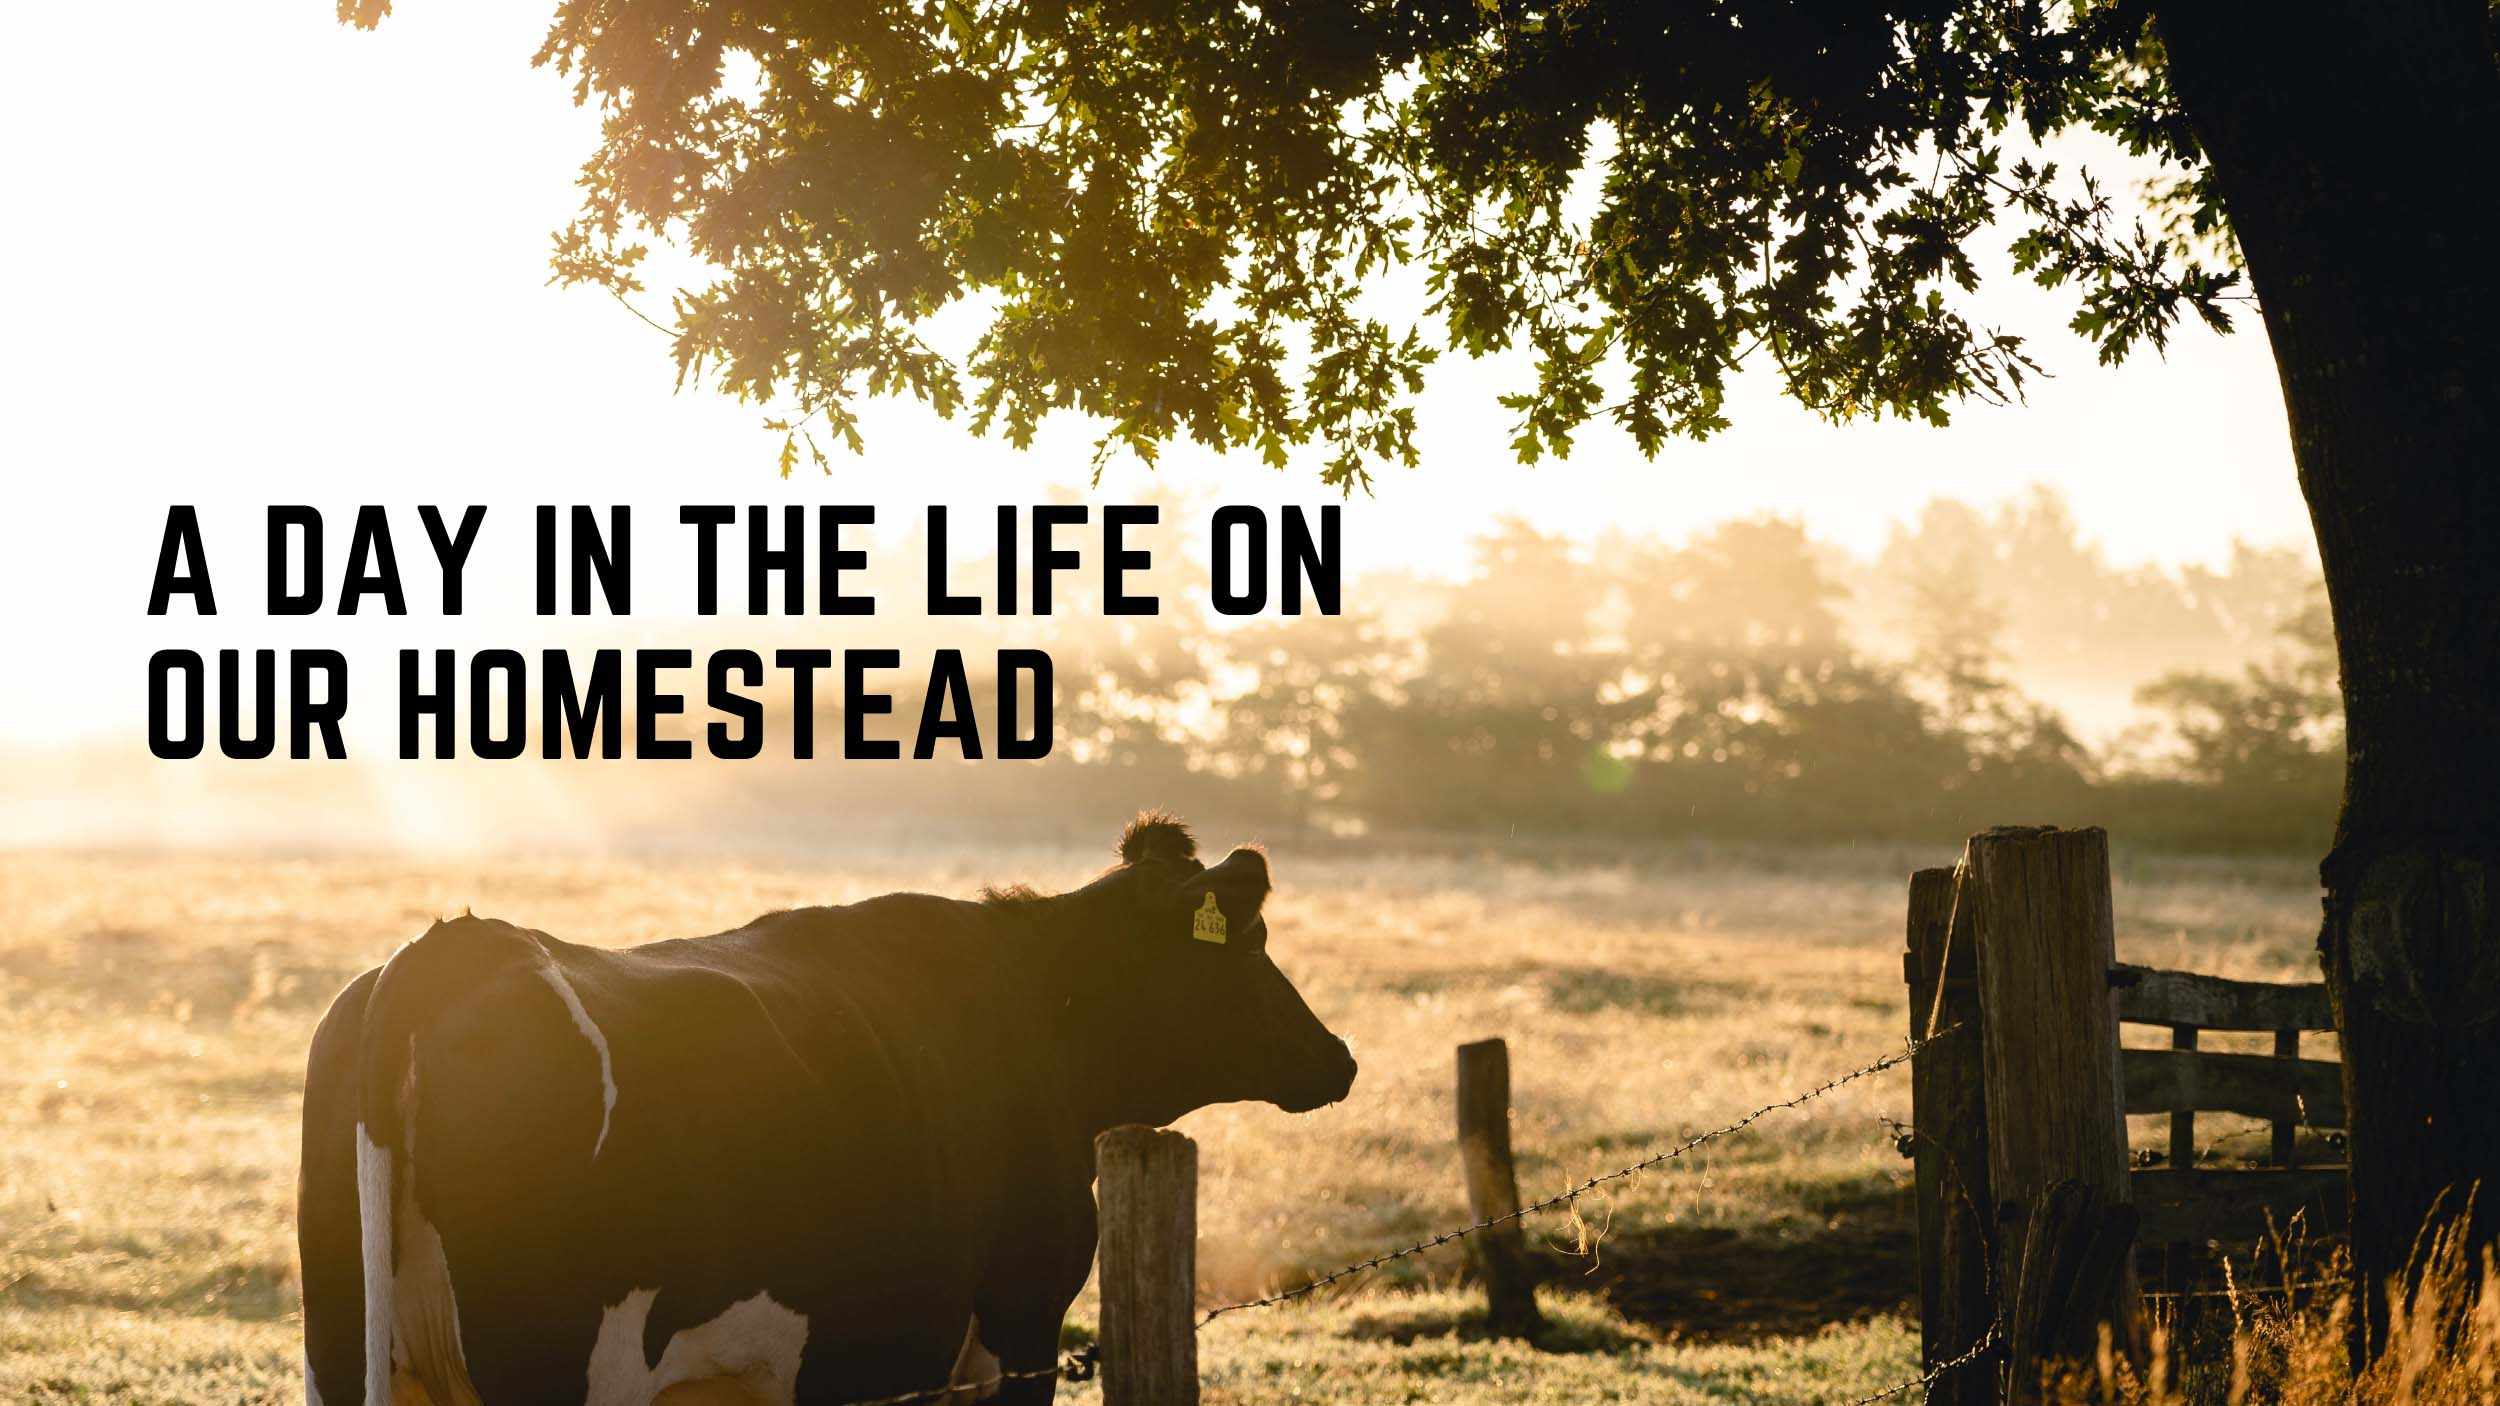 A Day in the Life on Our Homestead